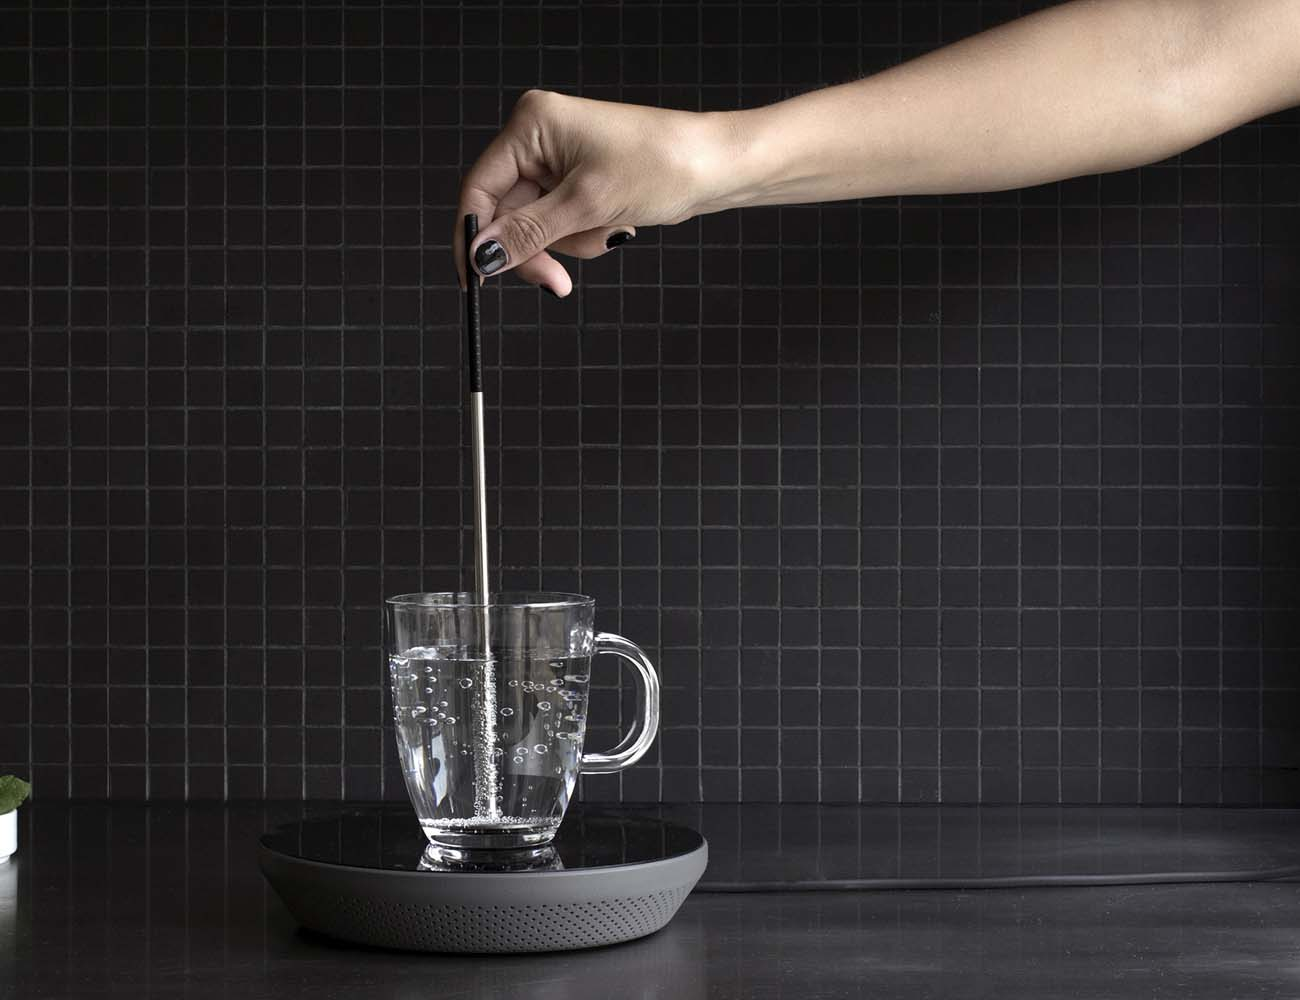 MIITO – The Sustainable Alternative To The Electric Kettle